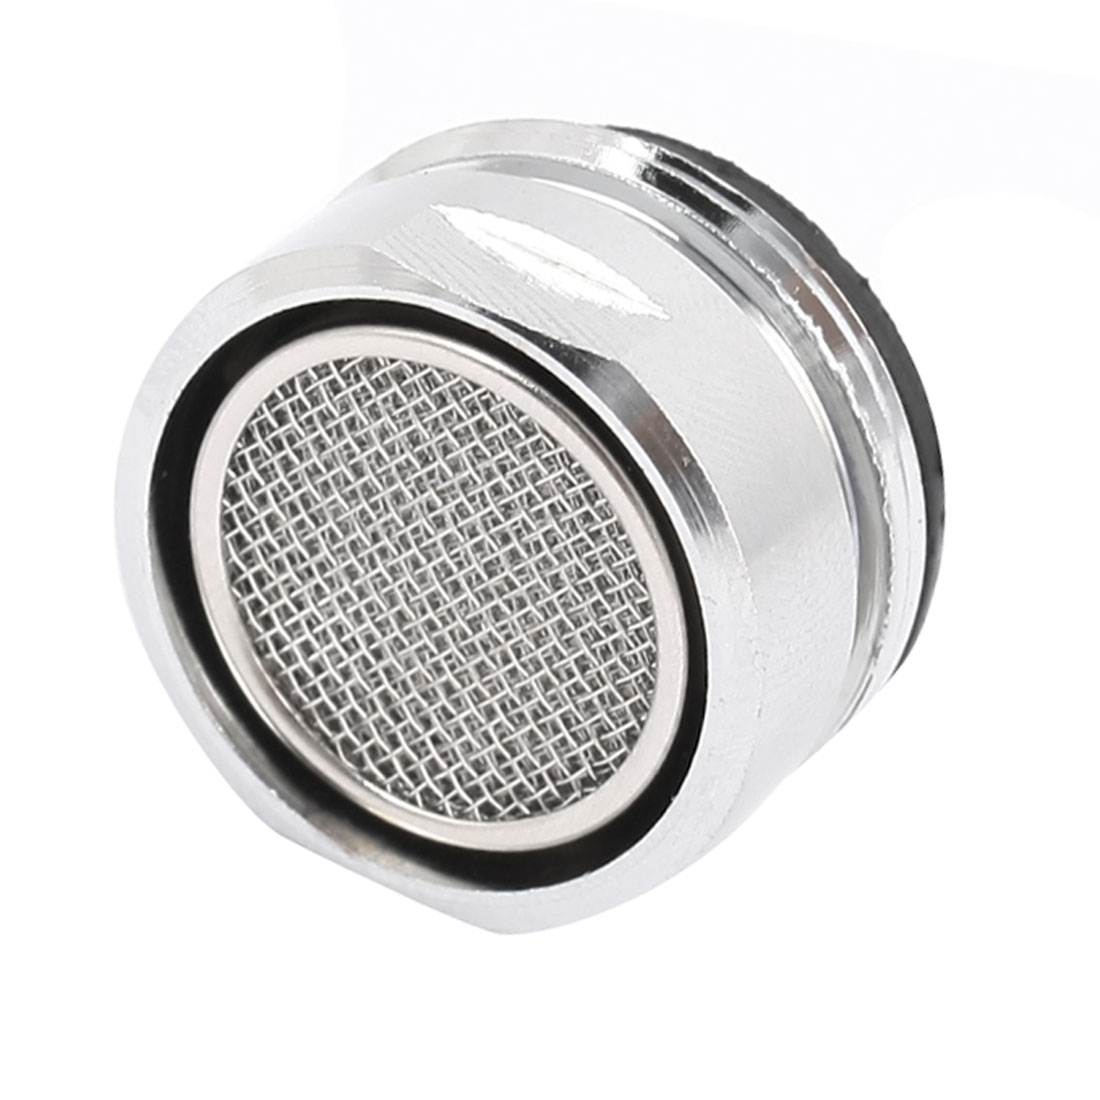 24mm Thread Silver Tone Faucet Tap Filtering Net Spout Aerator Nozzle